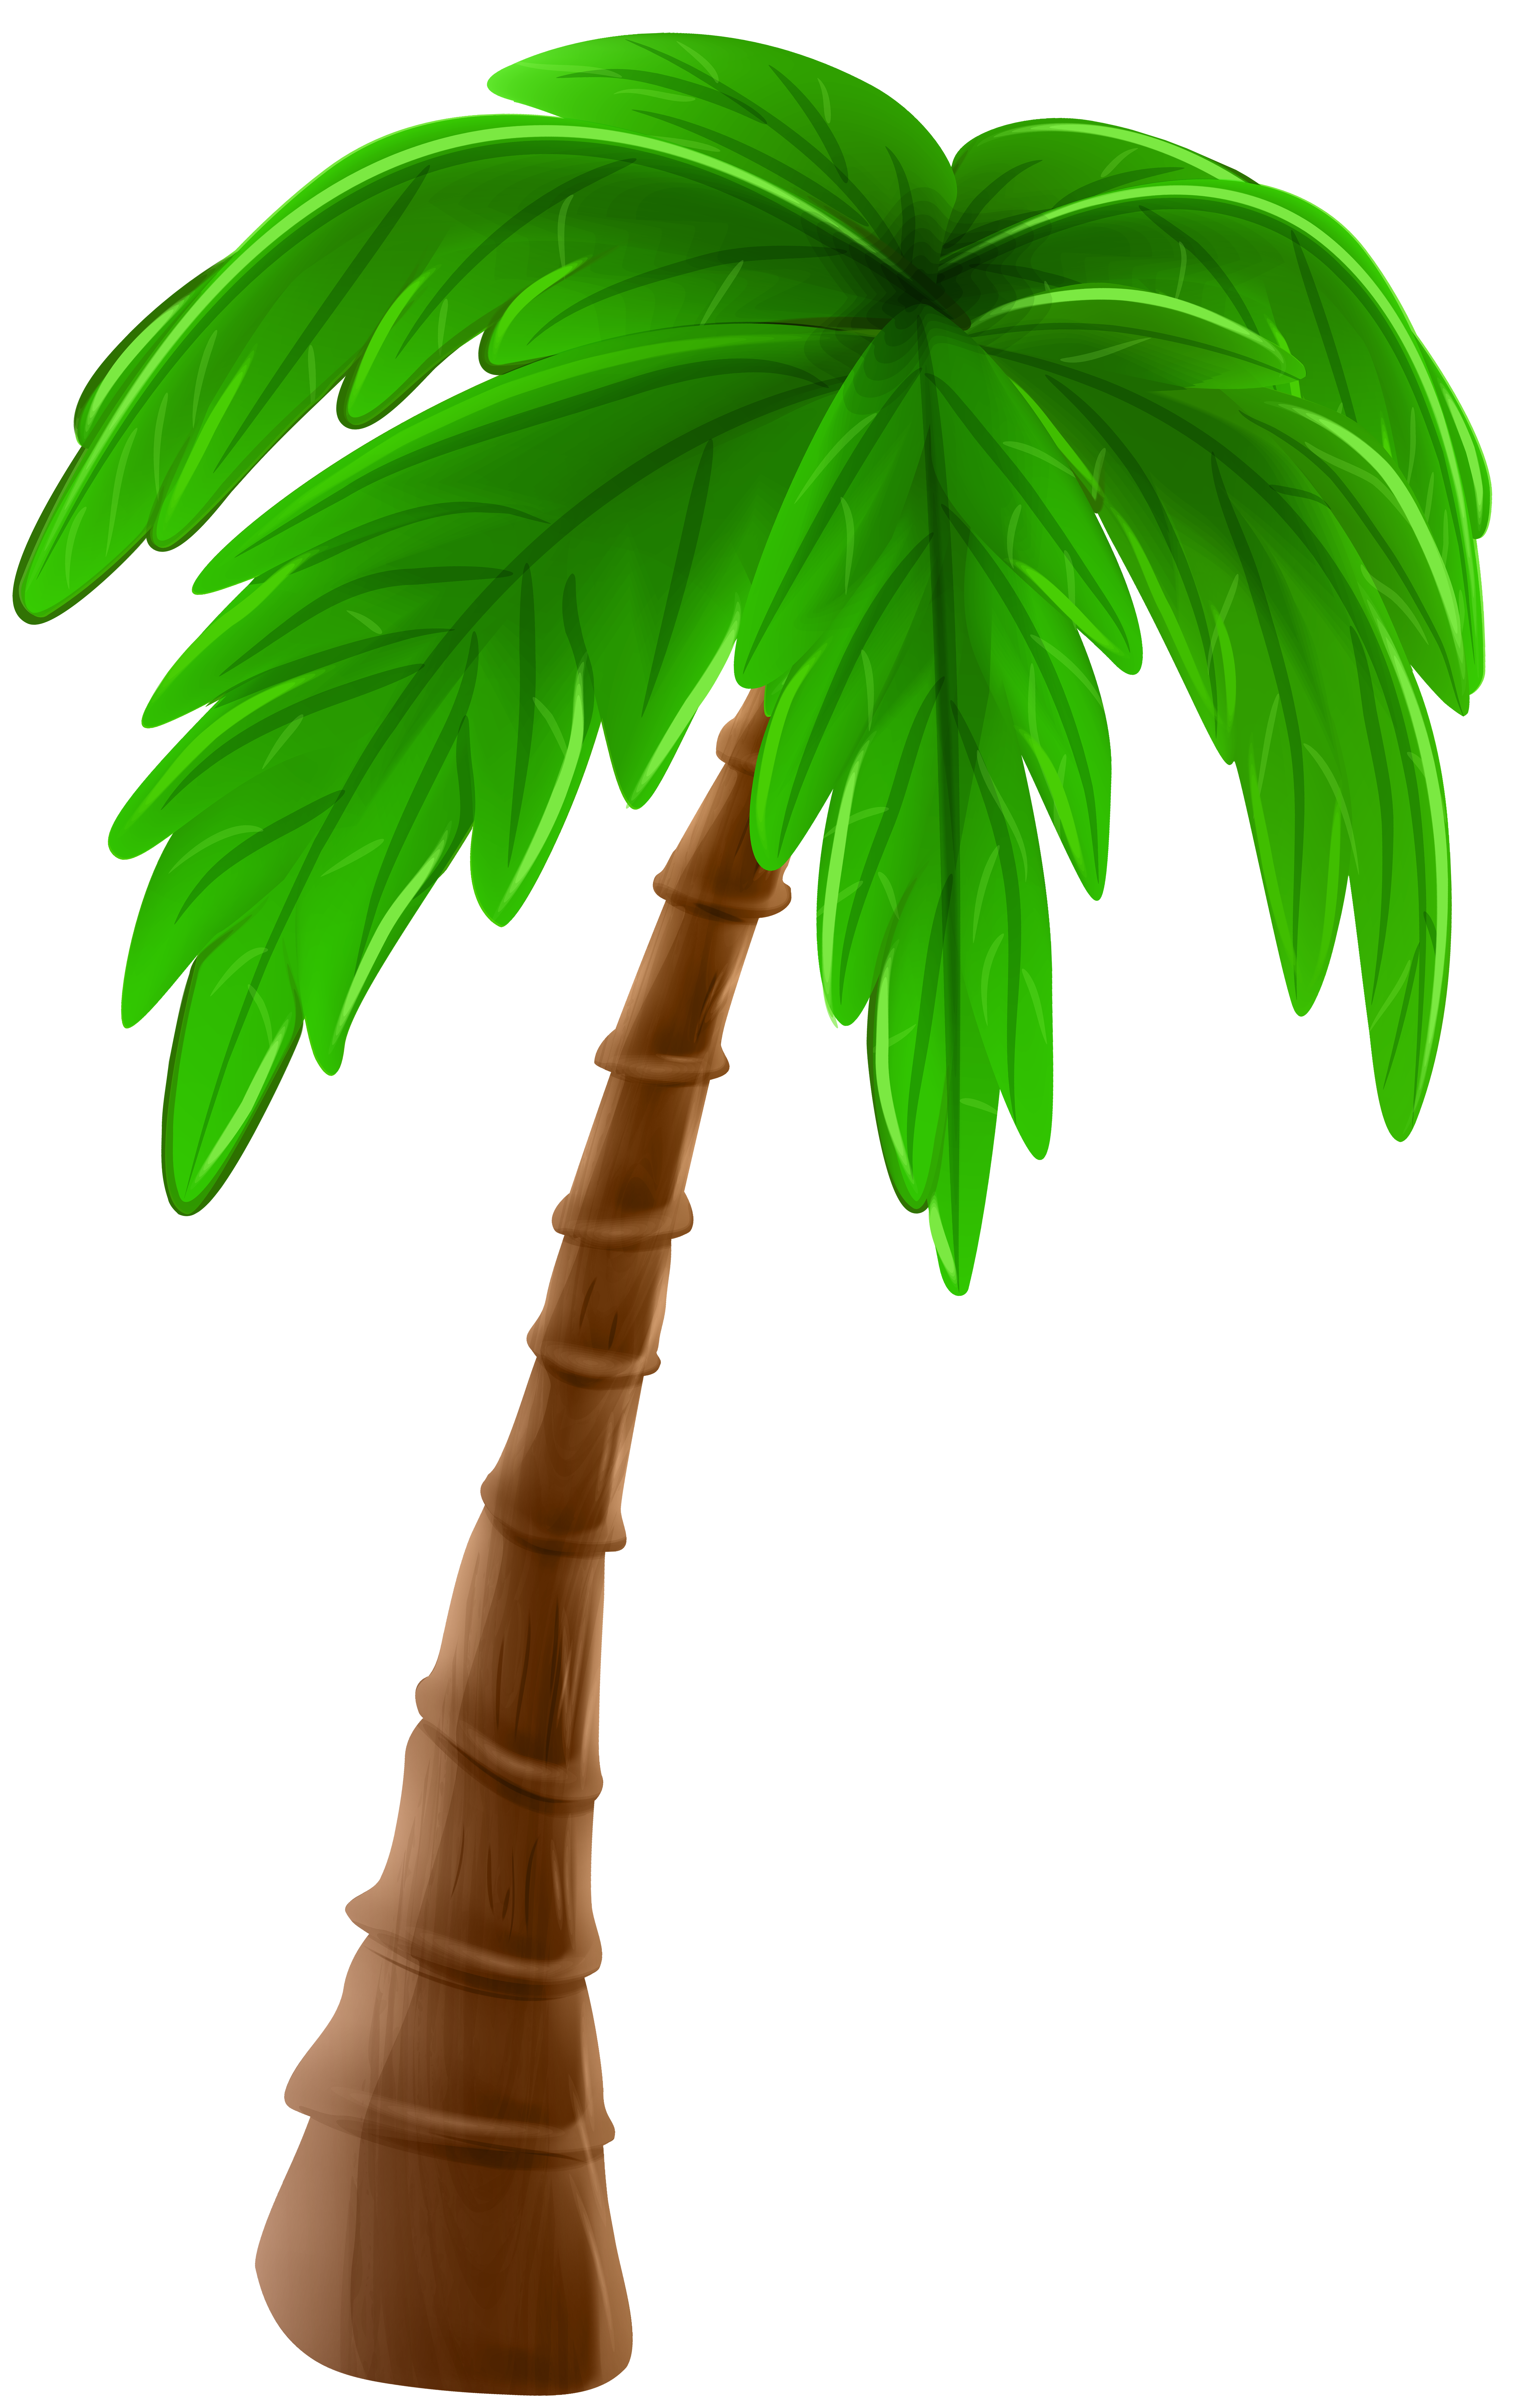 Cartoon palm tree png. Clip art image gallery